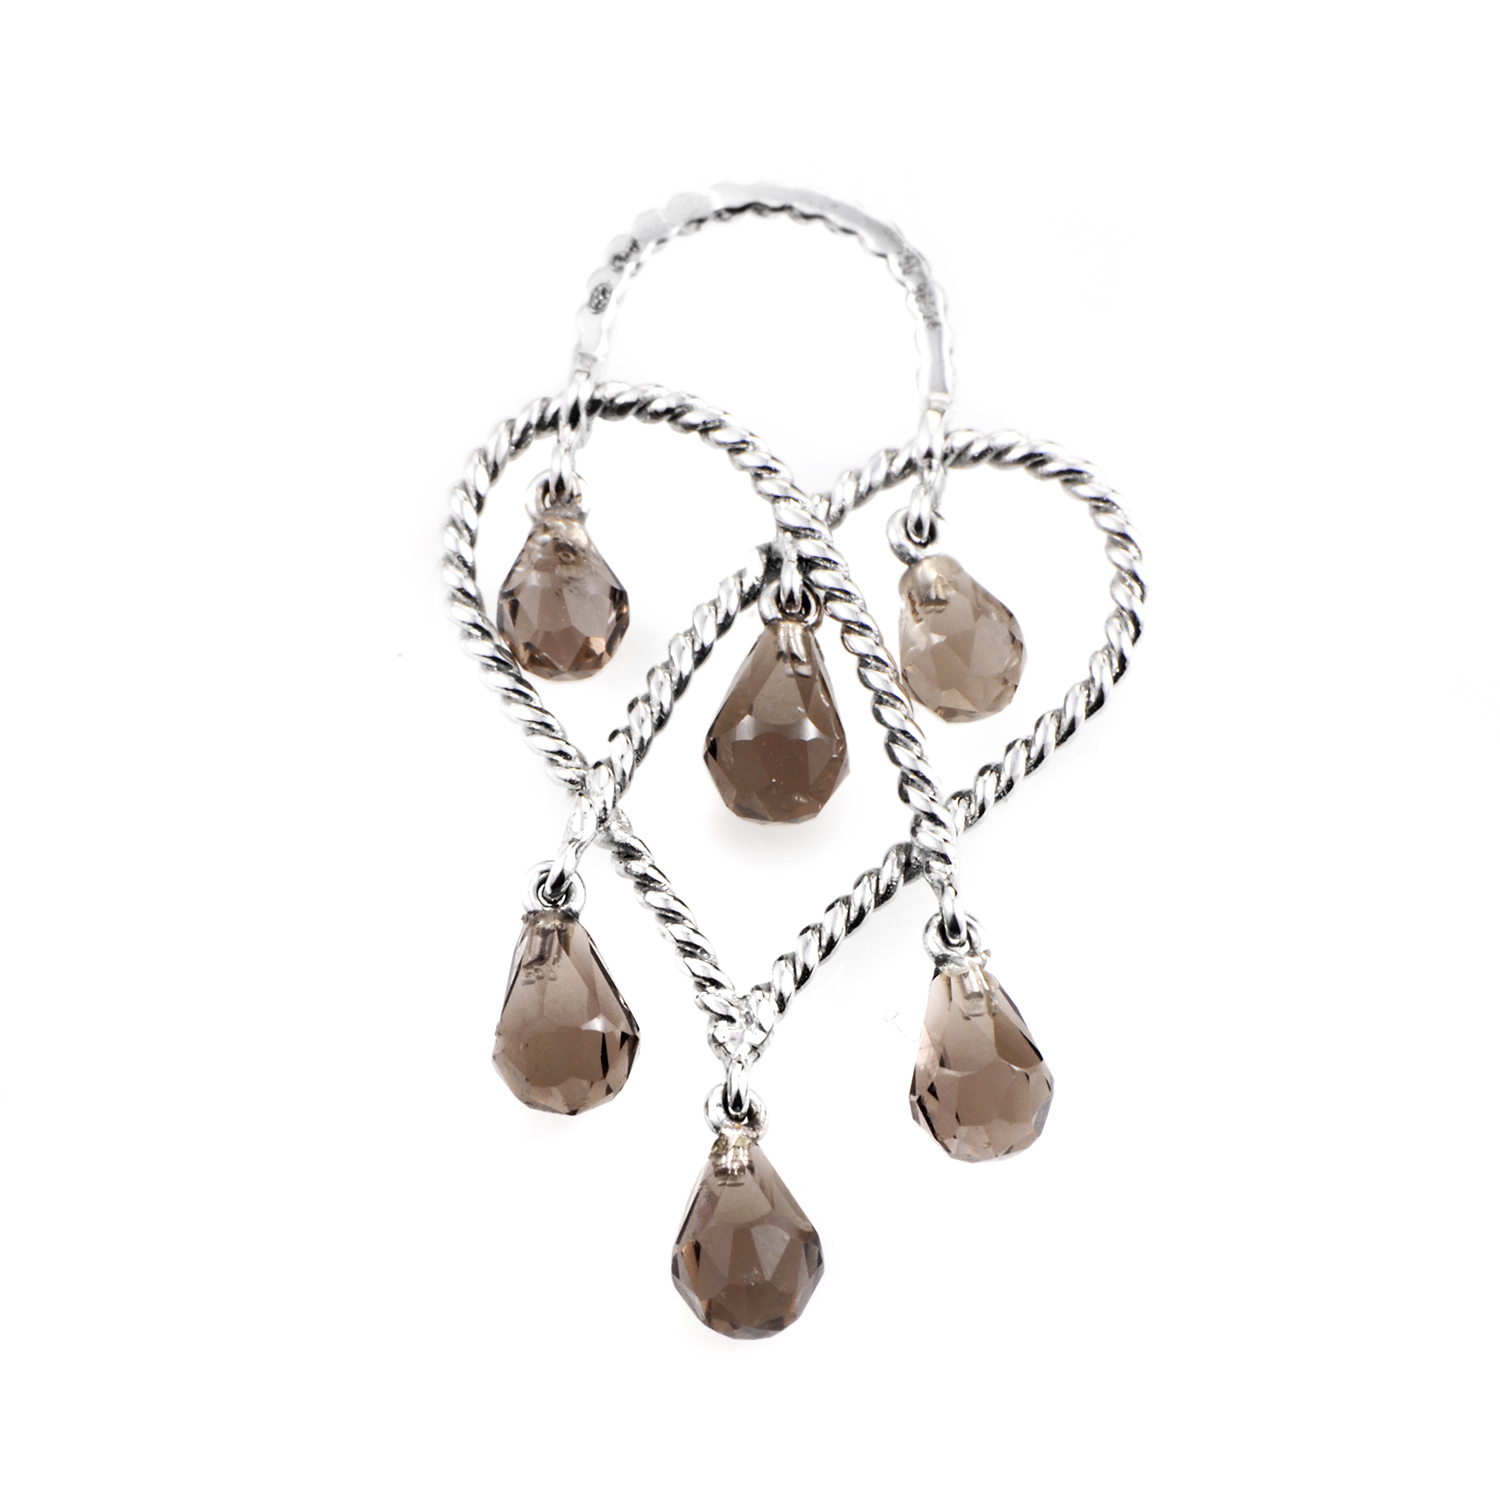 In Love Heart 18K White Gold & Smoky Quartz Briolette Pendant